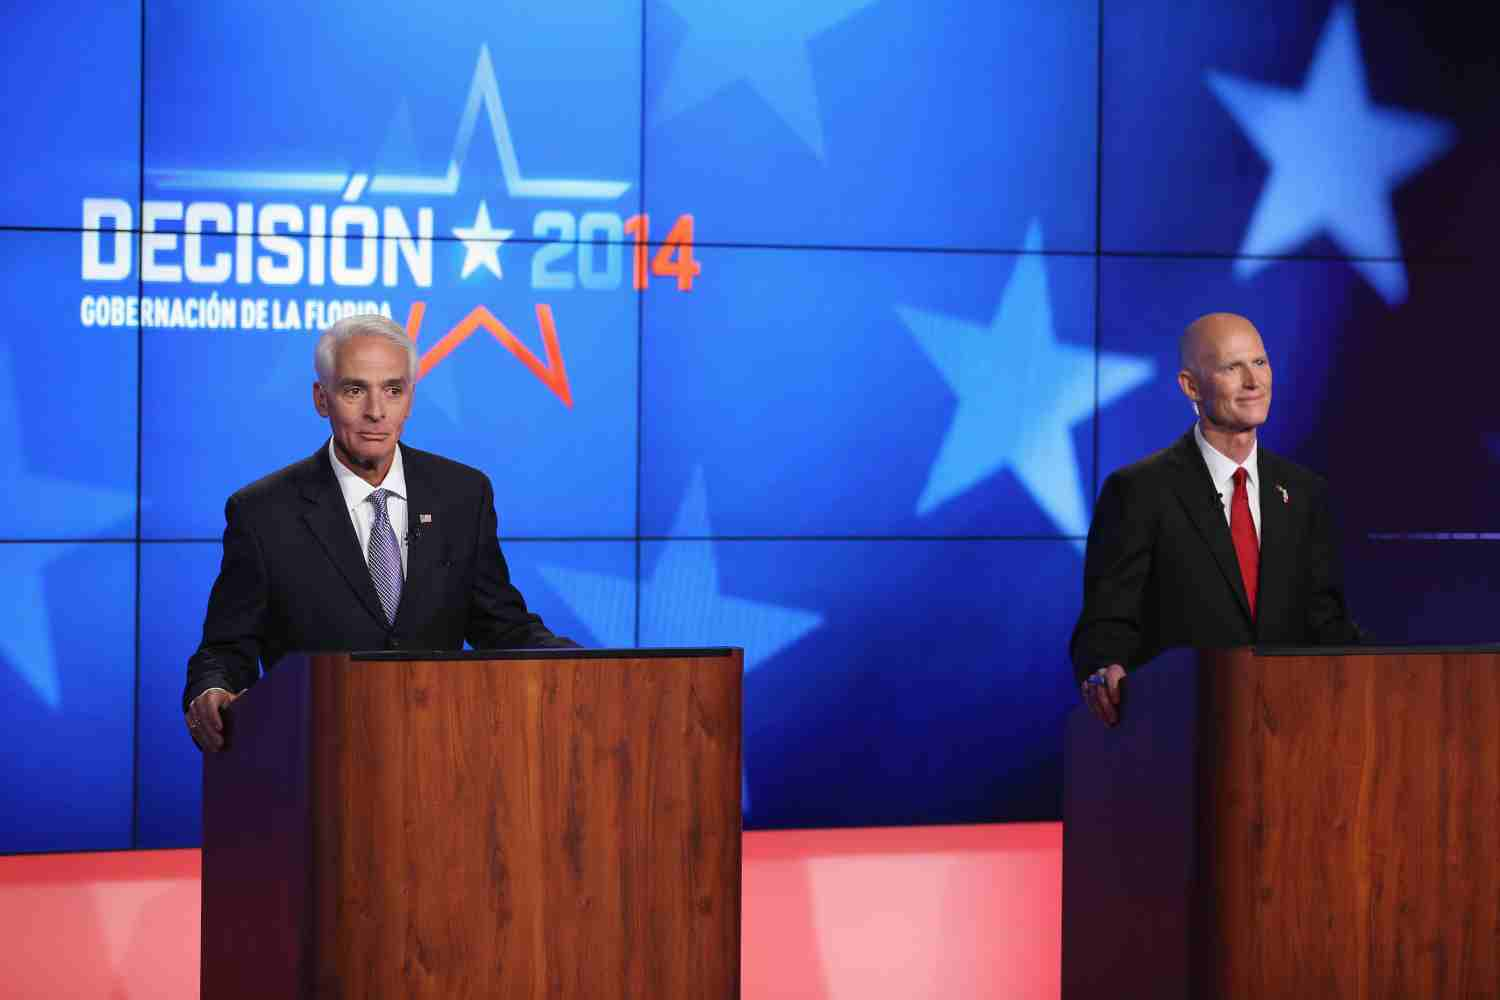 Former Gov. Charlie Crist and current Gov. Rick Scott in a debate hosted by Telemundo on Oct. 10, 2014.